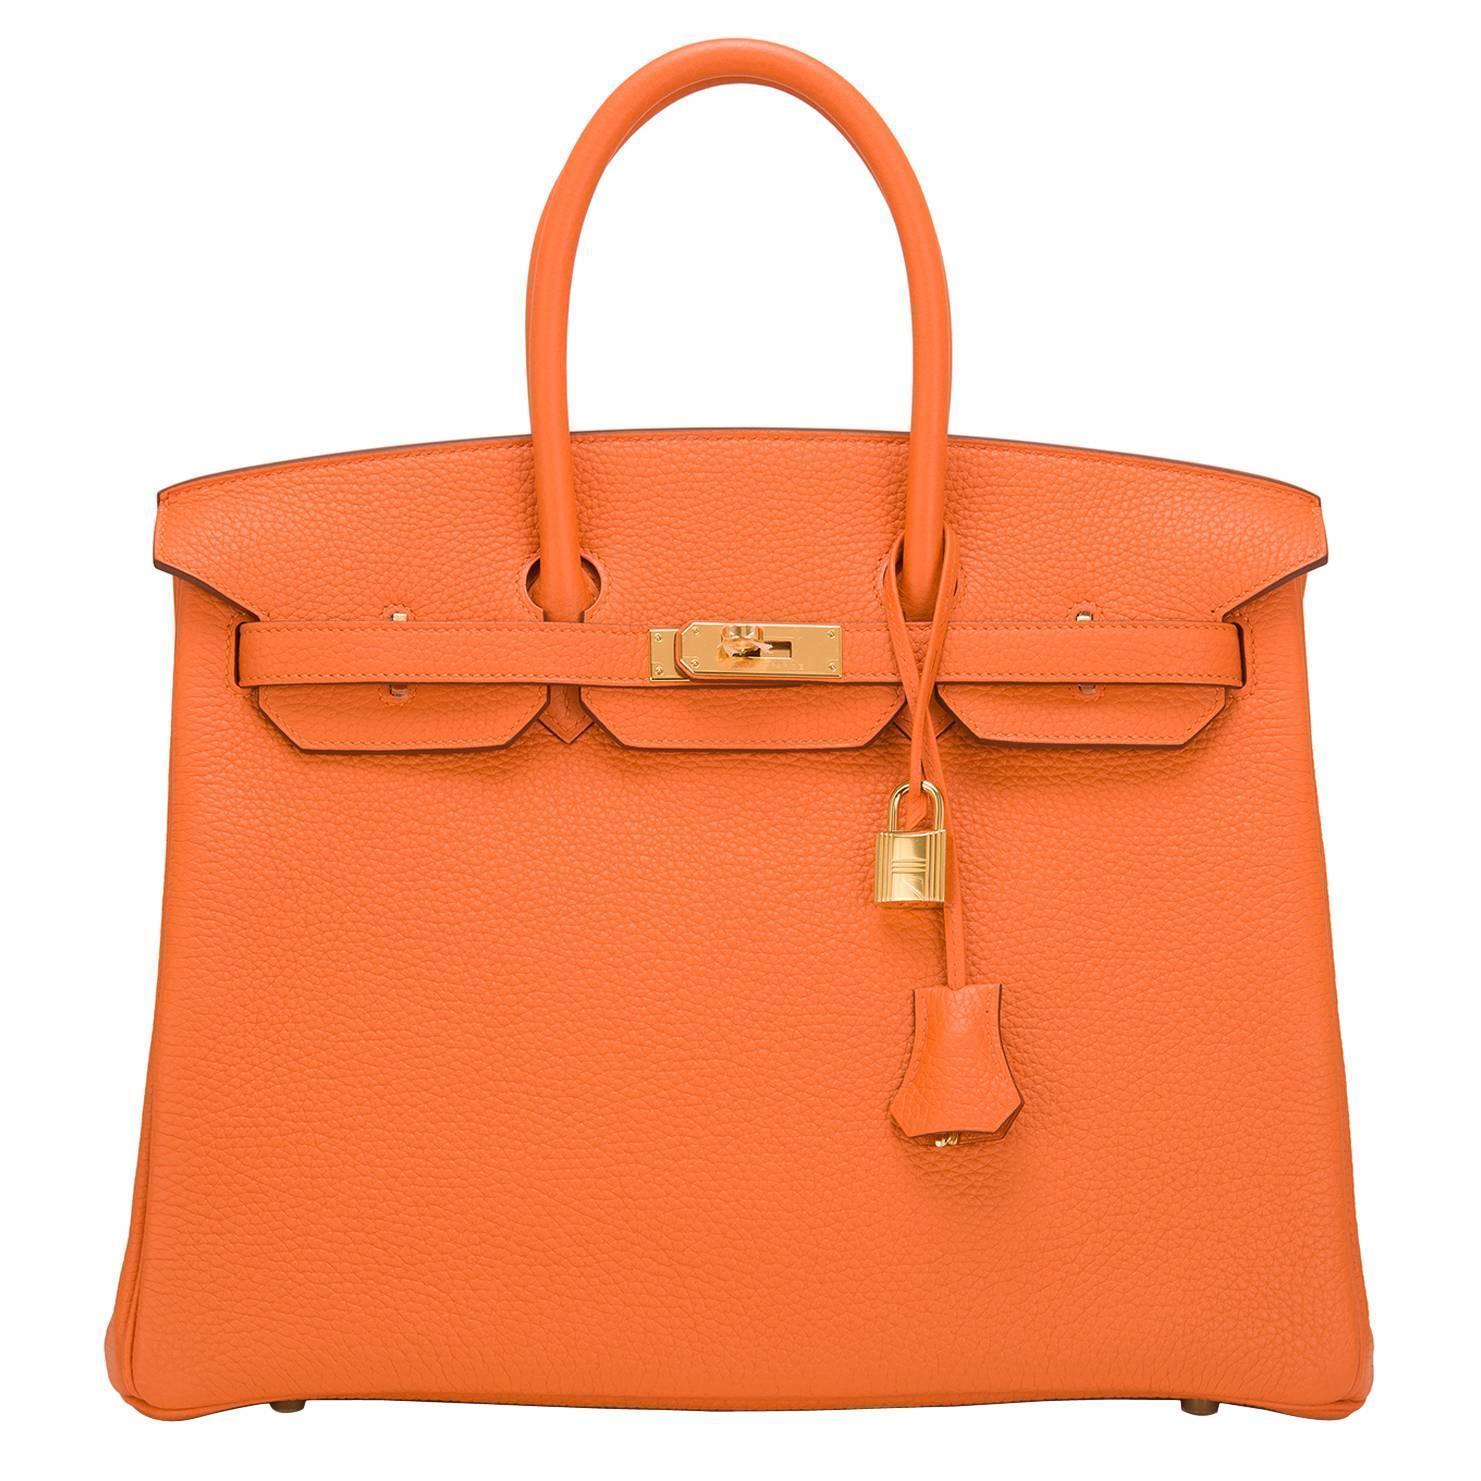 kelly purses - Hermes Orange Clemence Birkin 35cm Gold Hardware at 1stdibs